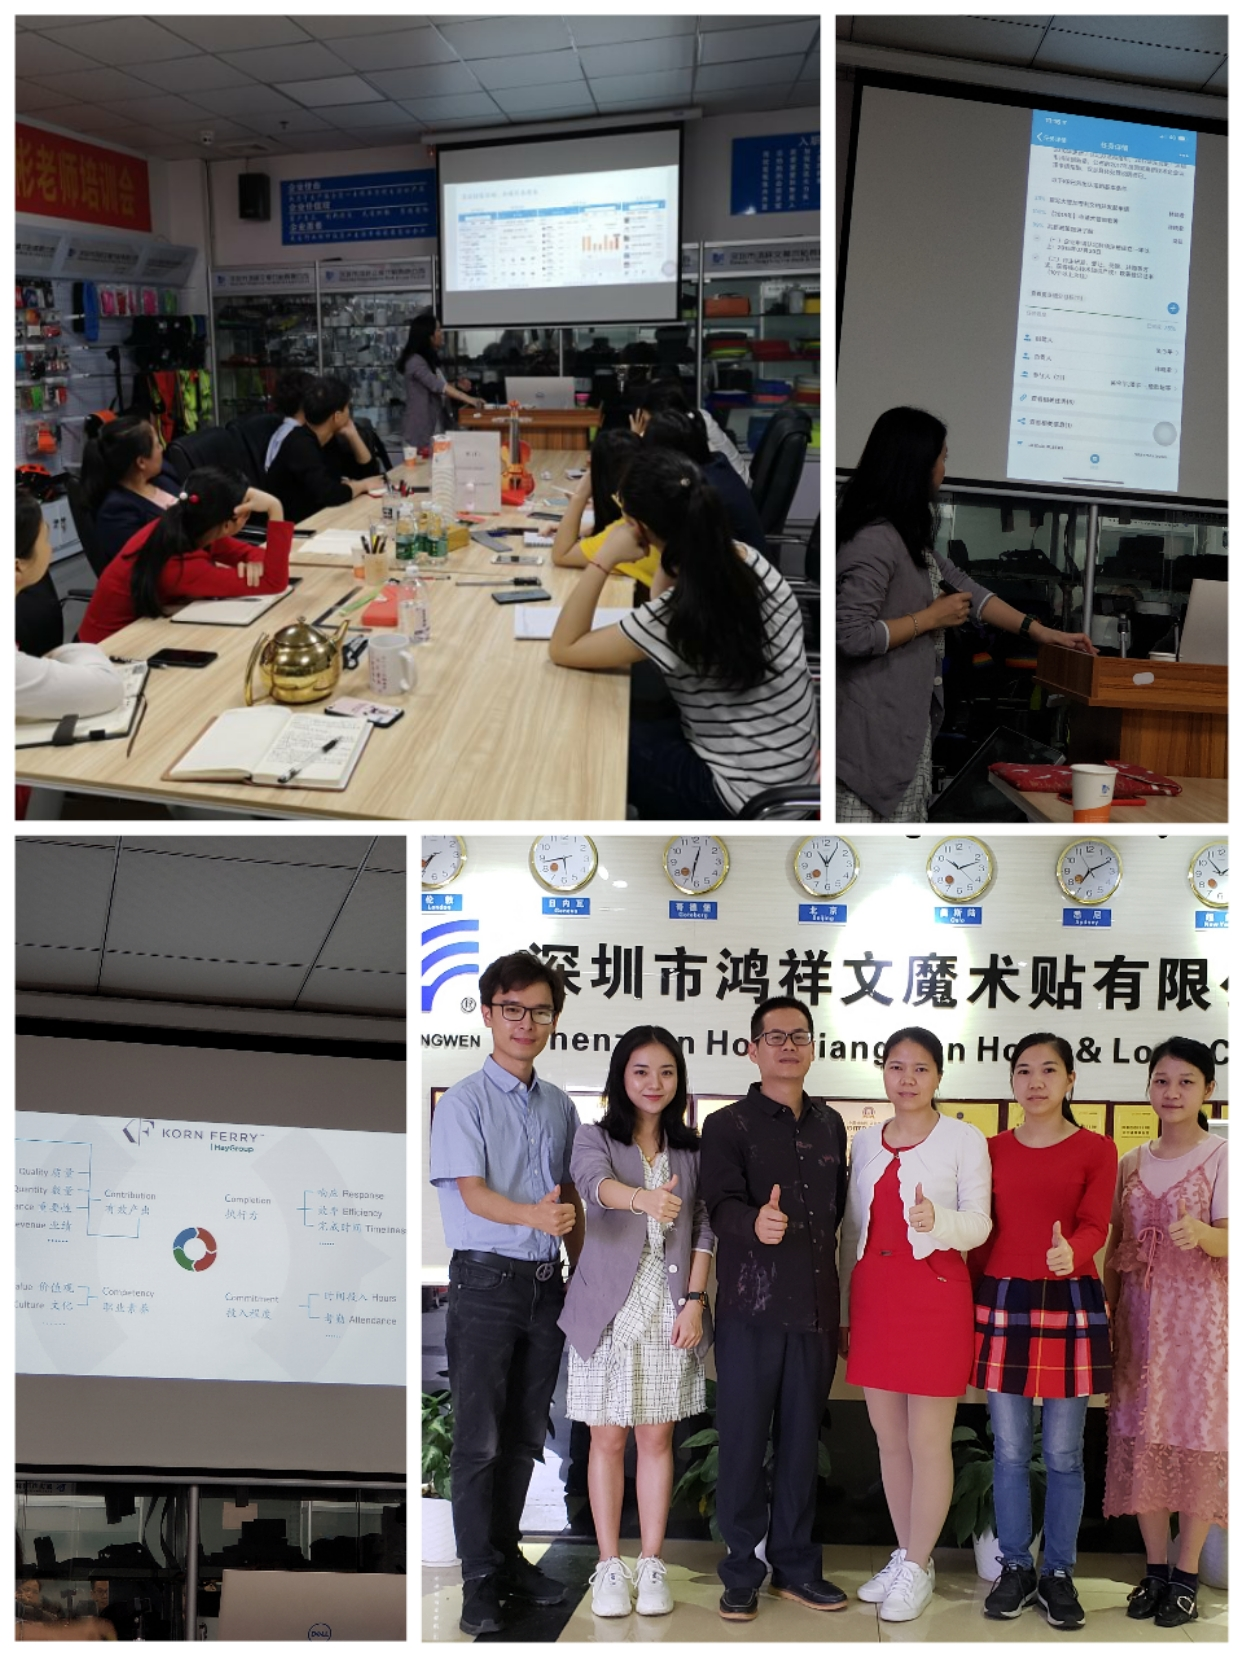 Hongxiangwen corporate culture  learning